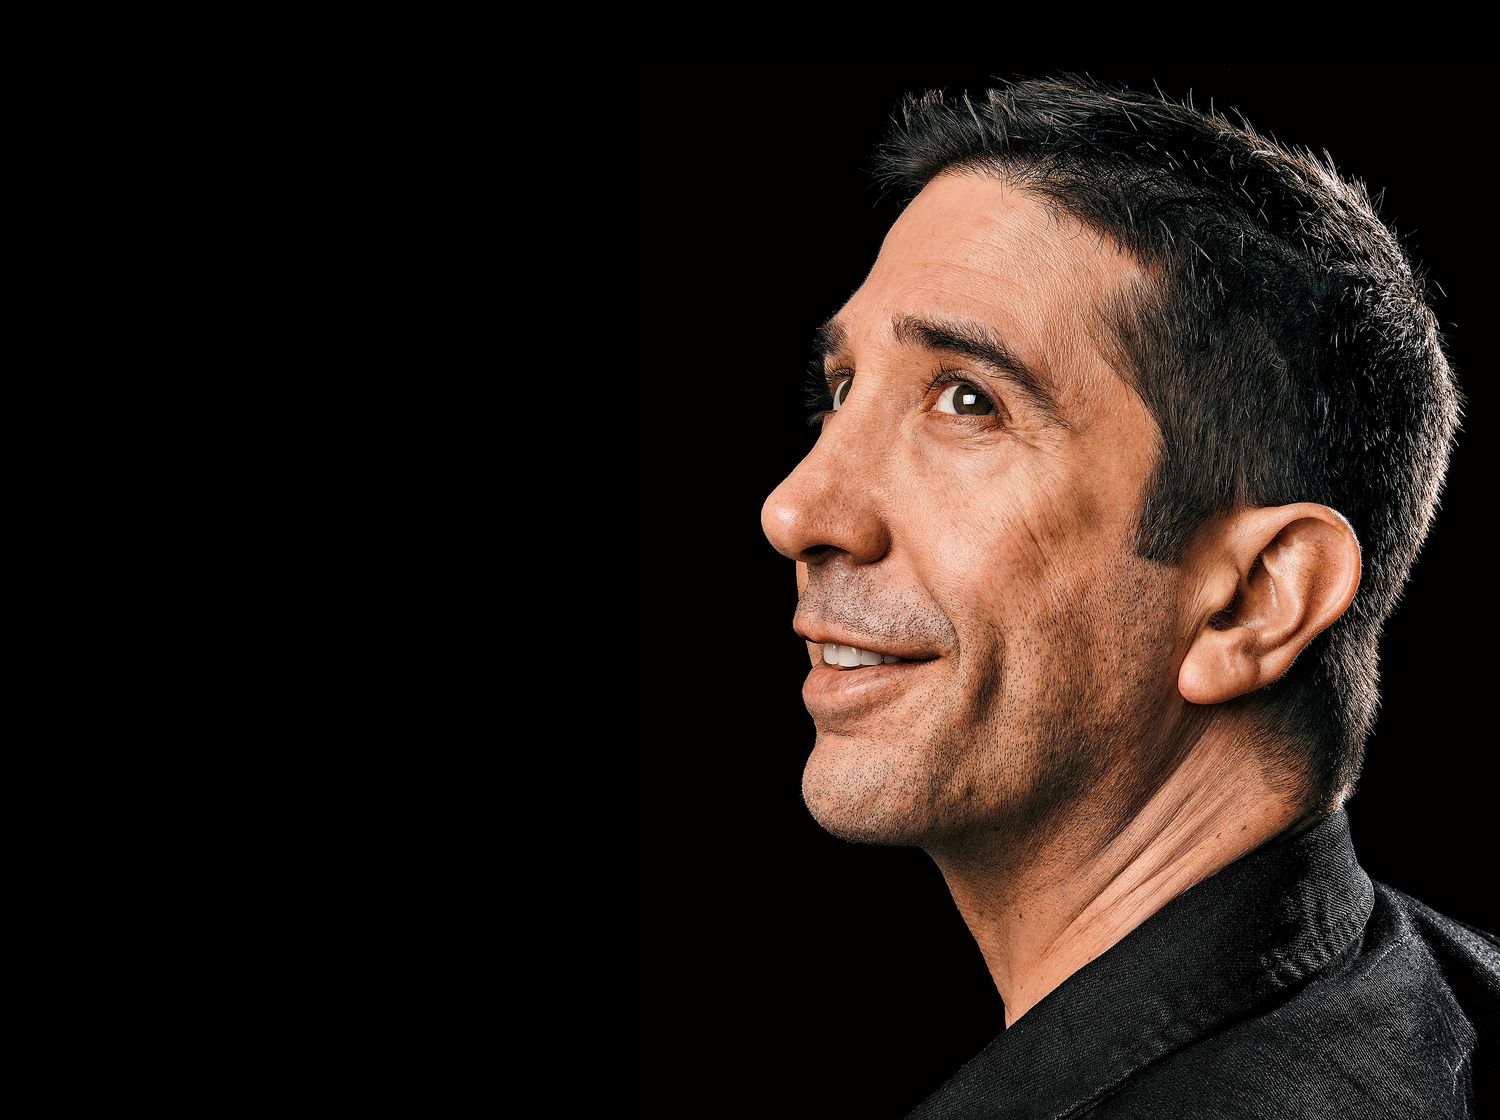 david schwimmer eye colordavid schwimmer 2017, david schwimmer height, david schwimmer wife, david schwimmer young, david schwimmer net worth, david schwimmer 2016, david schwimmer and zoe buckman, david schwimmer interview, david schwimmer robert kardashian, david schwimmer 2015, david schwimmer john carter, david schwimmer wiki, david schwimmer director, david schwimmer parents, david schwimmer movies, david schwimmer accident, david schwimmer home, david schwimmer eye color, david schwimmer films, david schwimmer rap battle